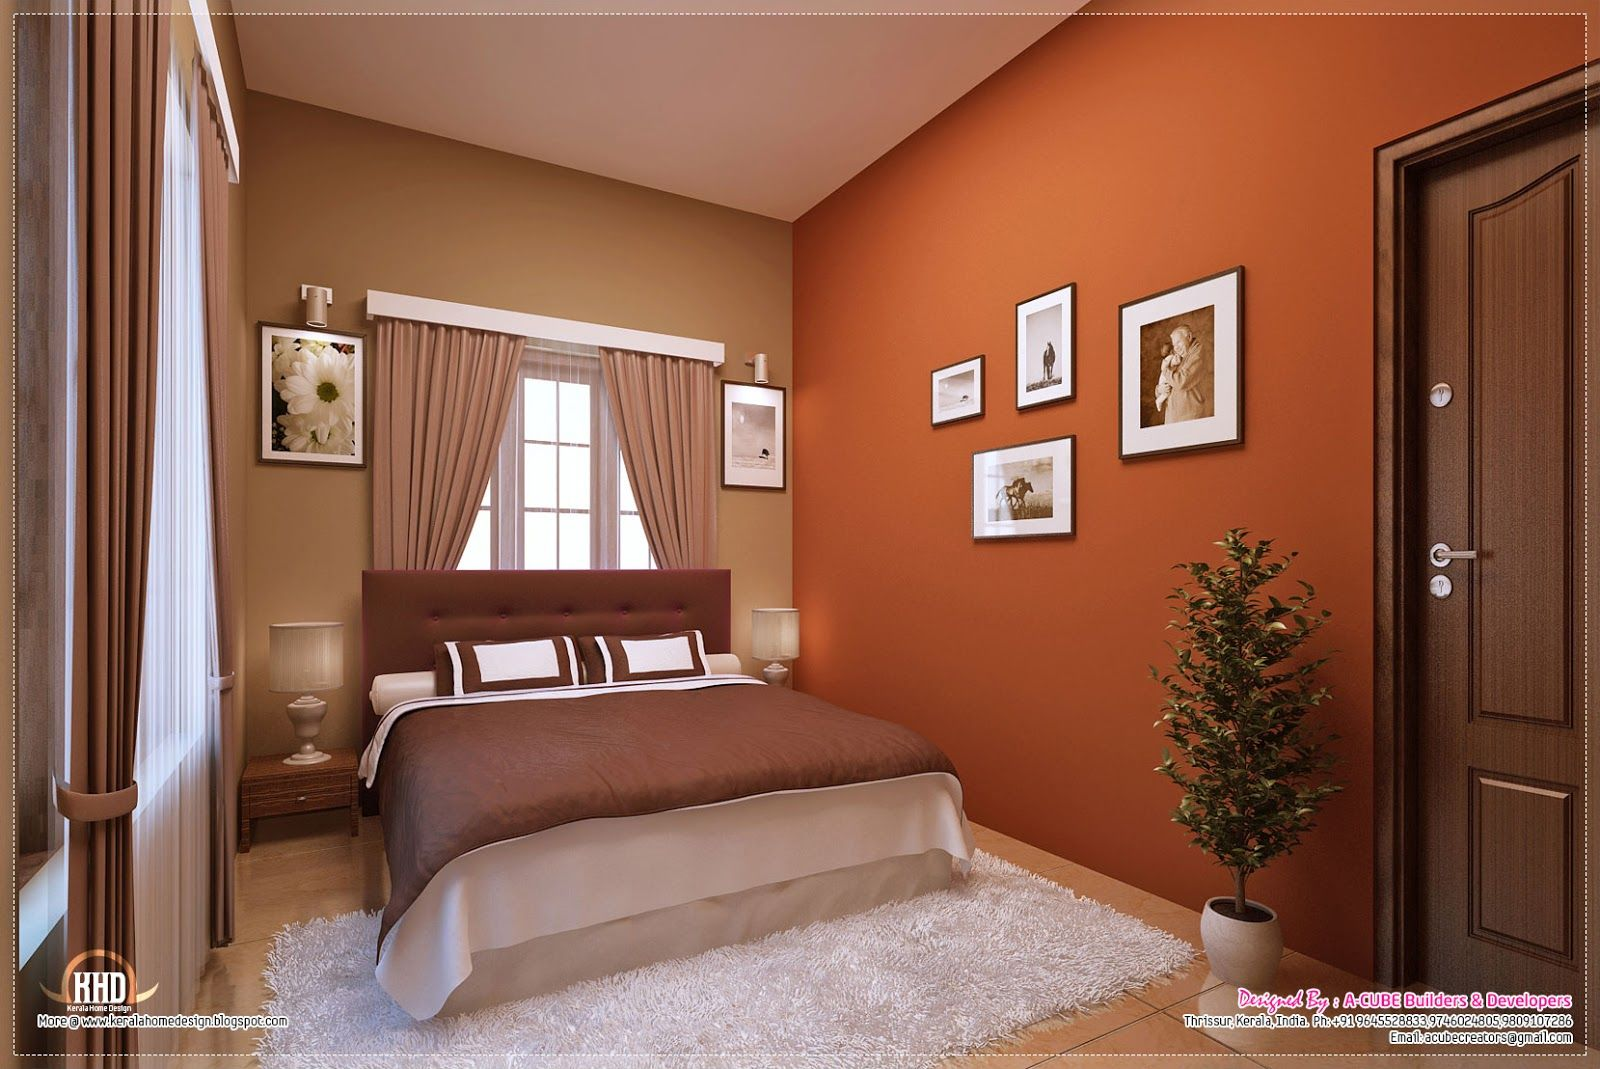 Awesome Interior Decoration Ideas Small Bedroom Interior Indian Bedroom Decor Bedroom Interior